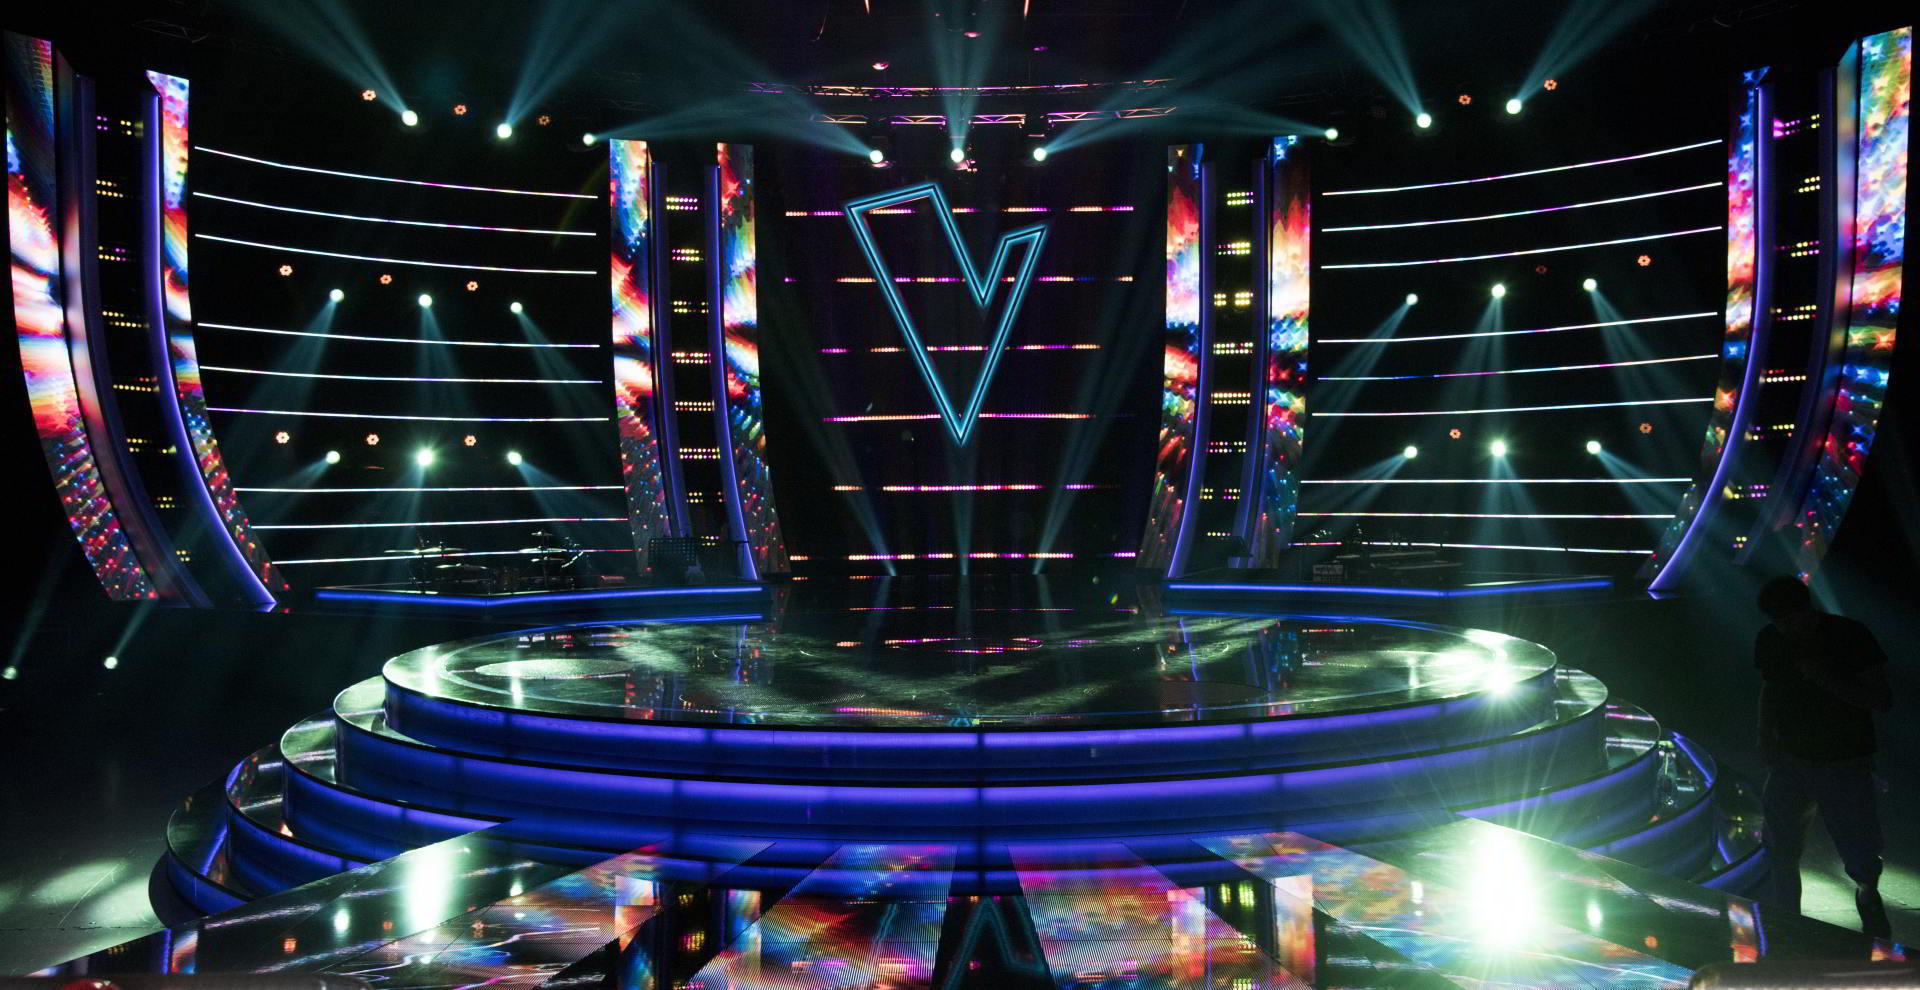 The Voice TV Show visuals